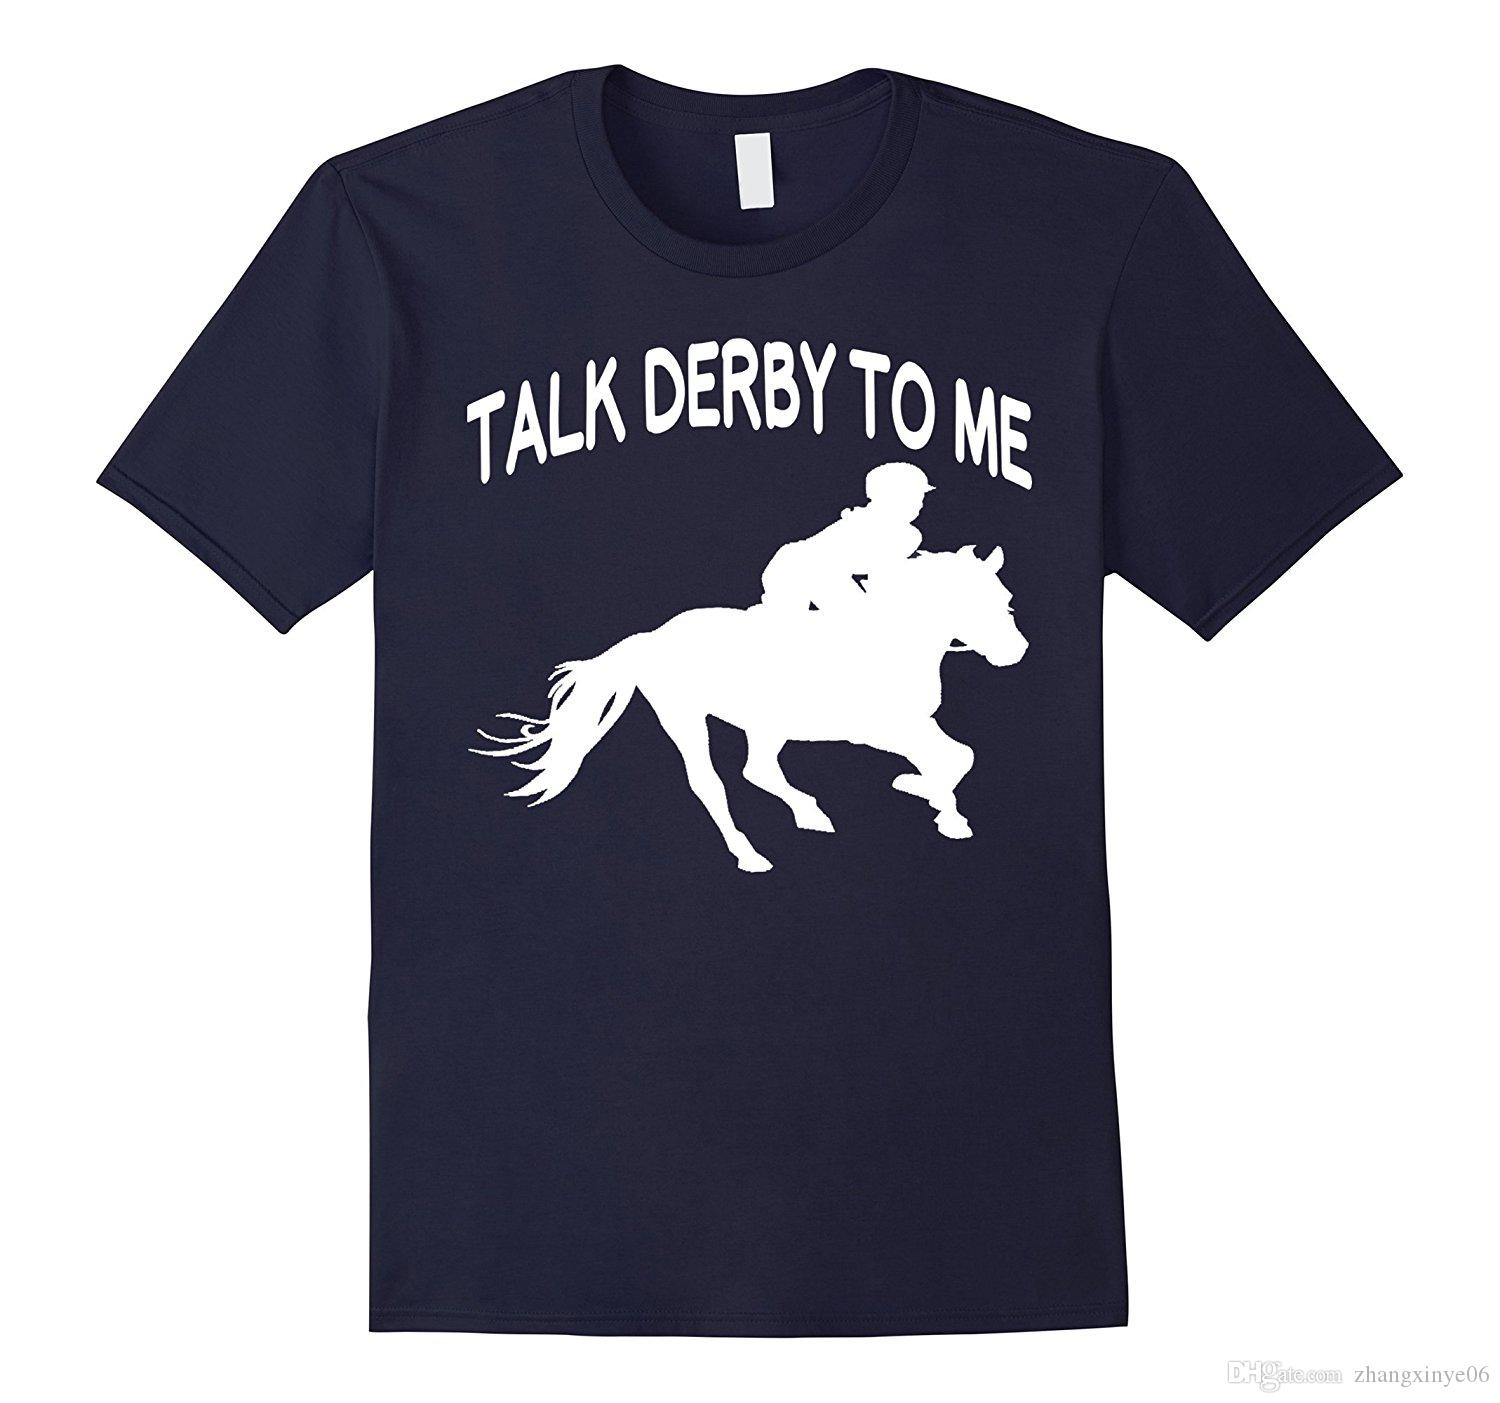 202d48e1 Talk Derby To Me Funny Horse Racing T Shirt Online Tee Shirts Shopping  Funniest Tee Shirts From Zhangxinye06, $14.21| DHgate.Com